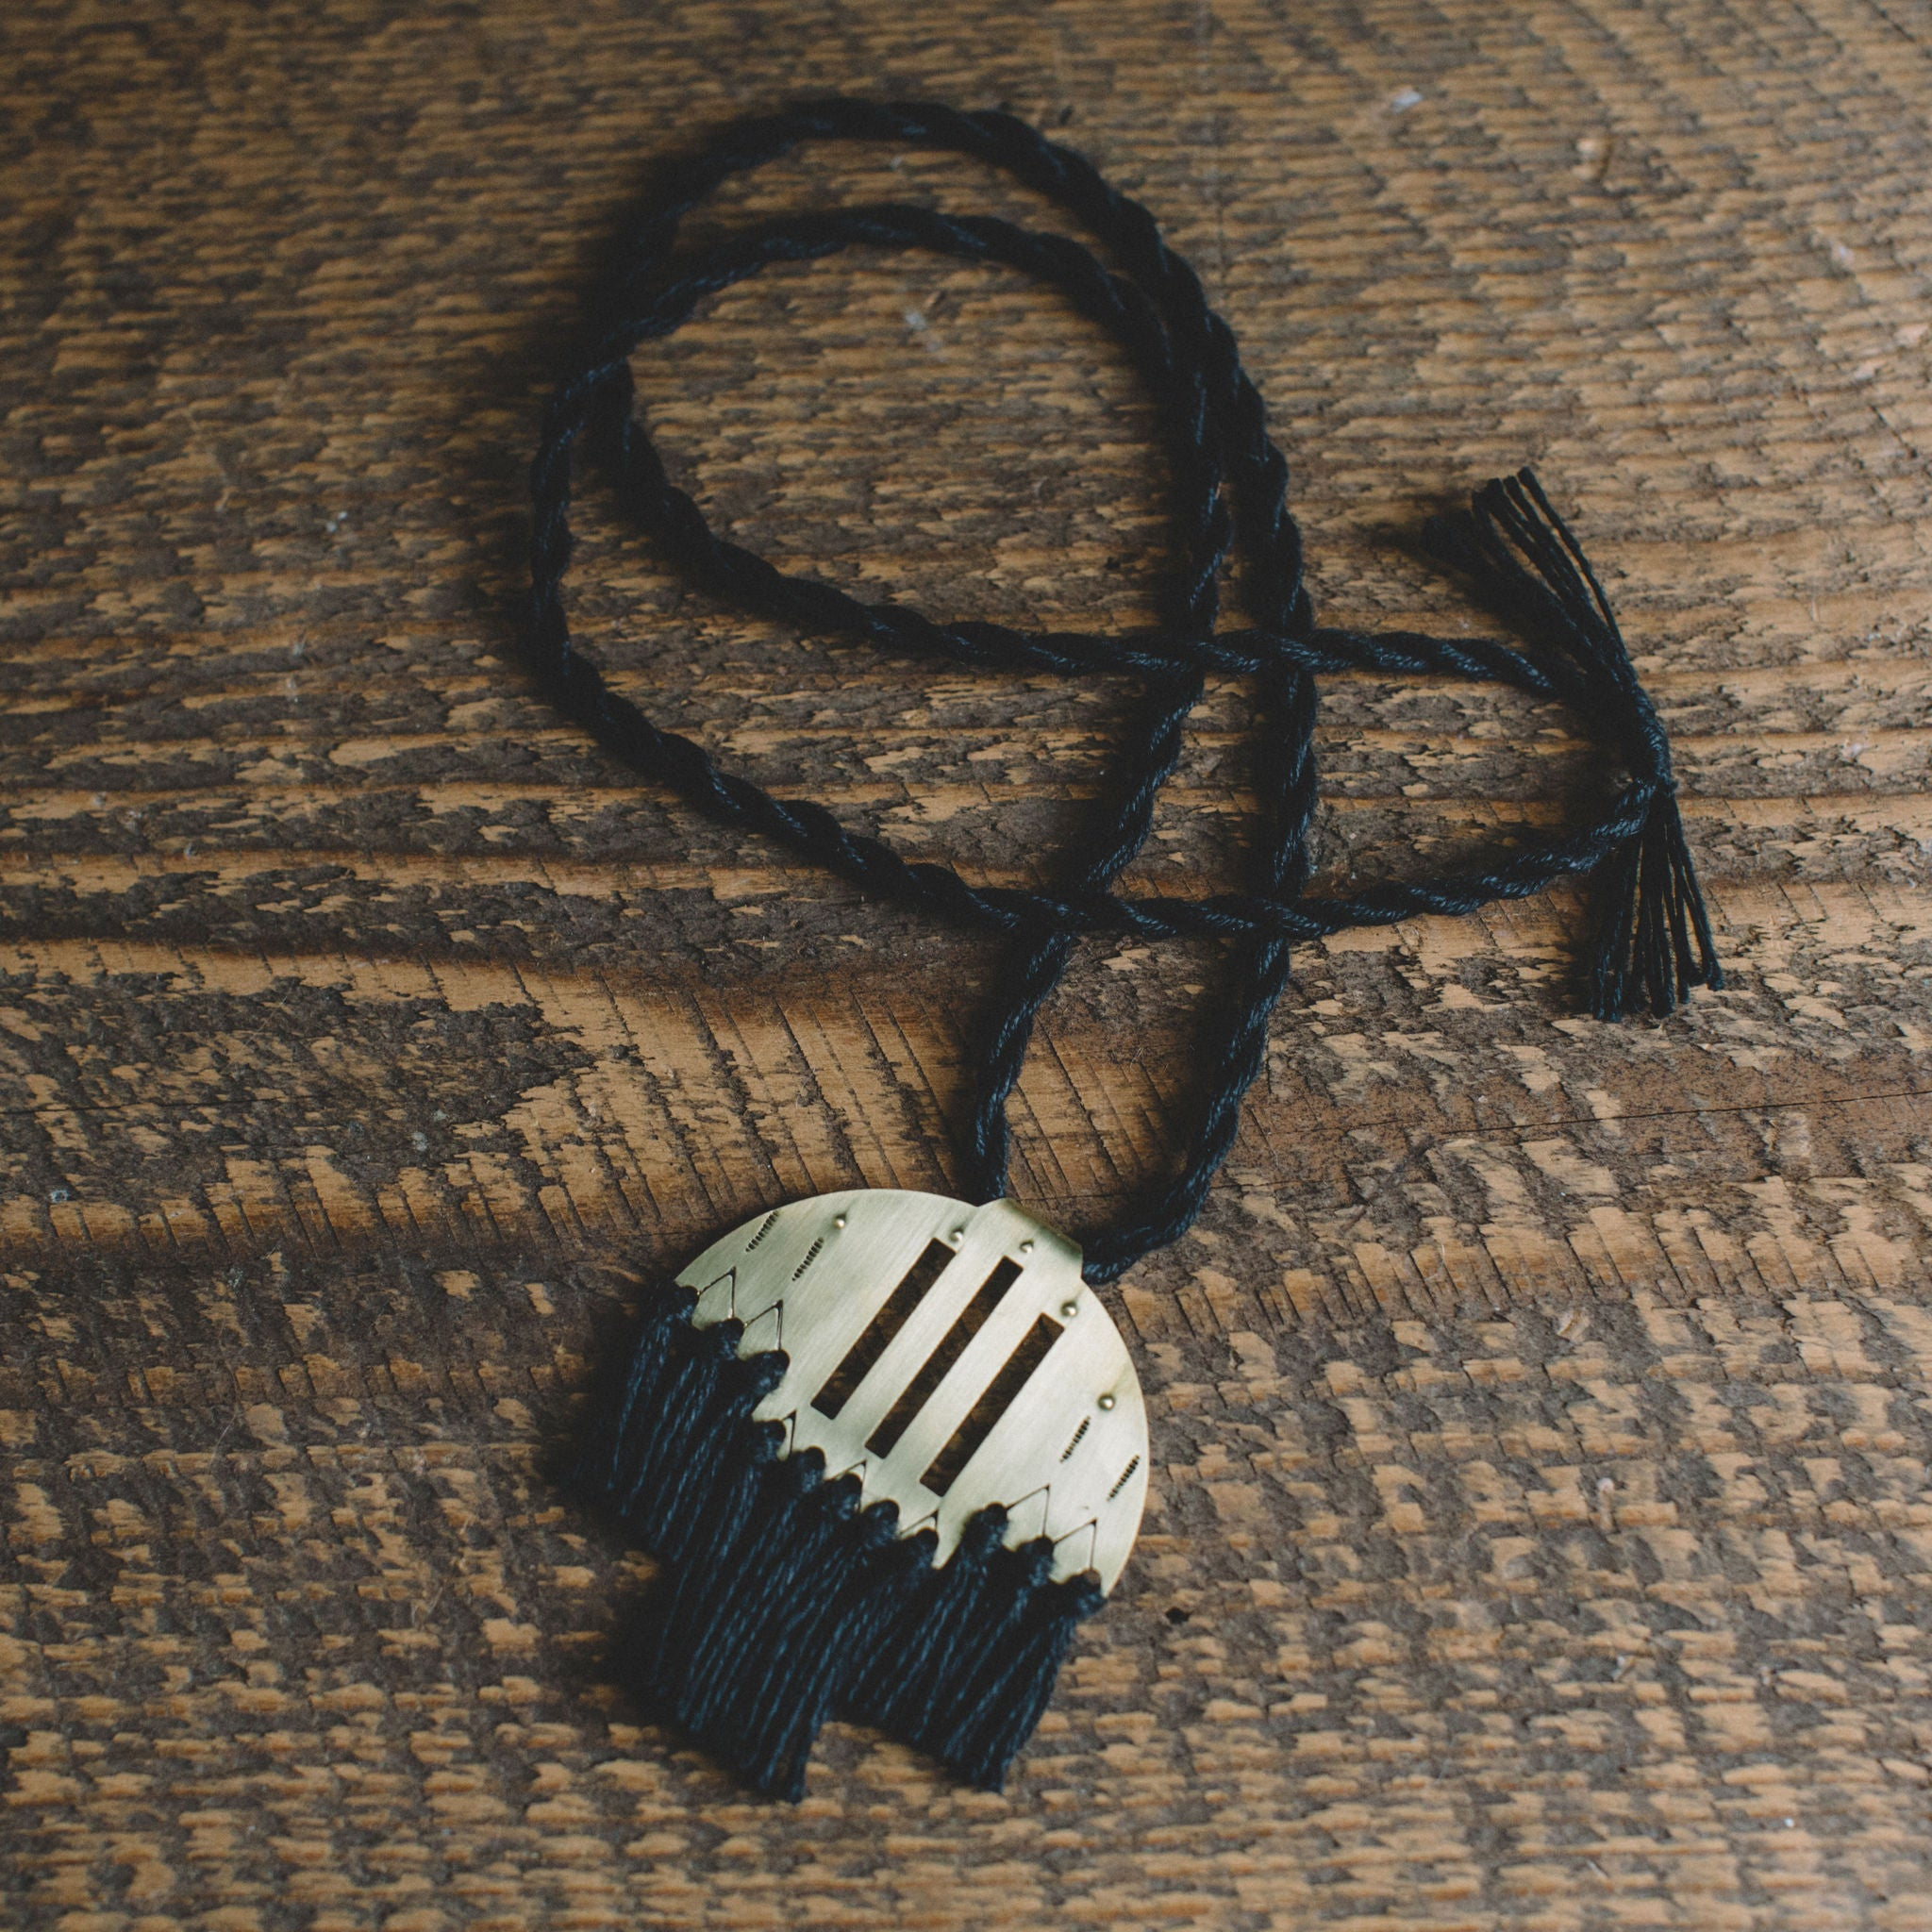 LUNA SOL || TALLGRASS NECKLACE